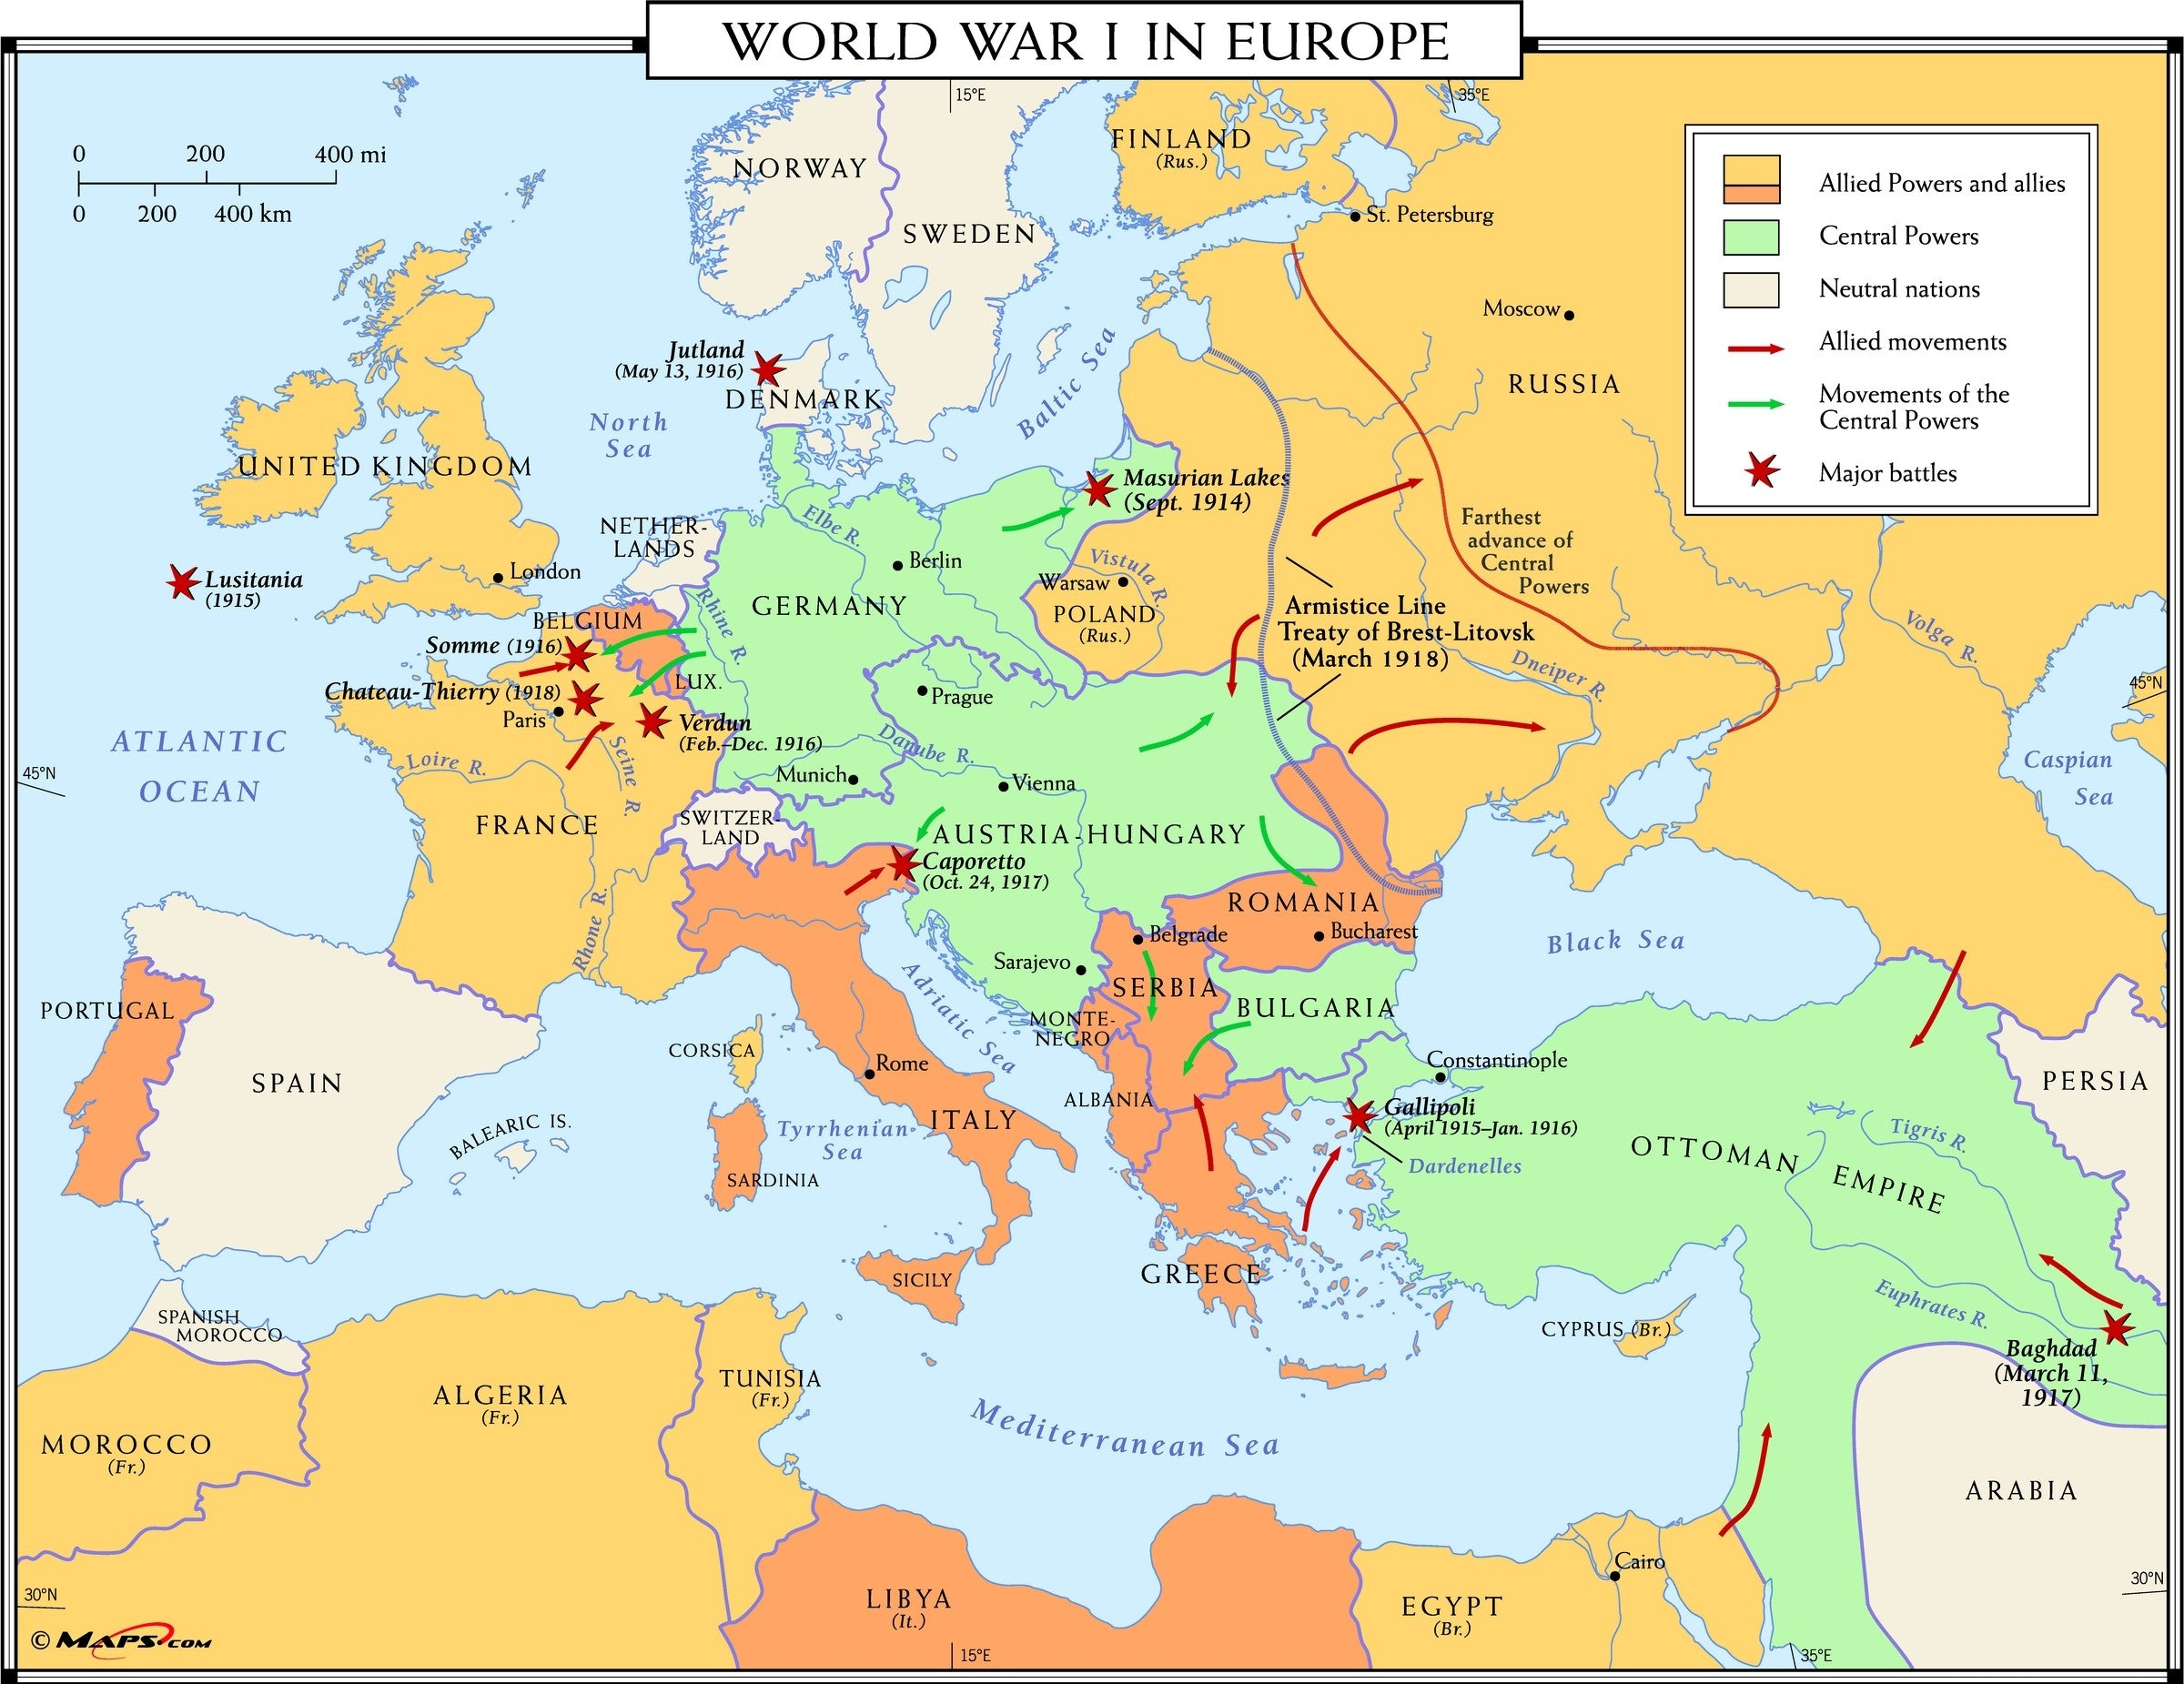 Europe After Ww1 Map Answers.World War I In Europe Map Maps Com